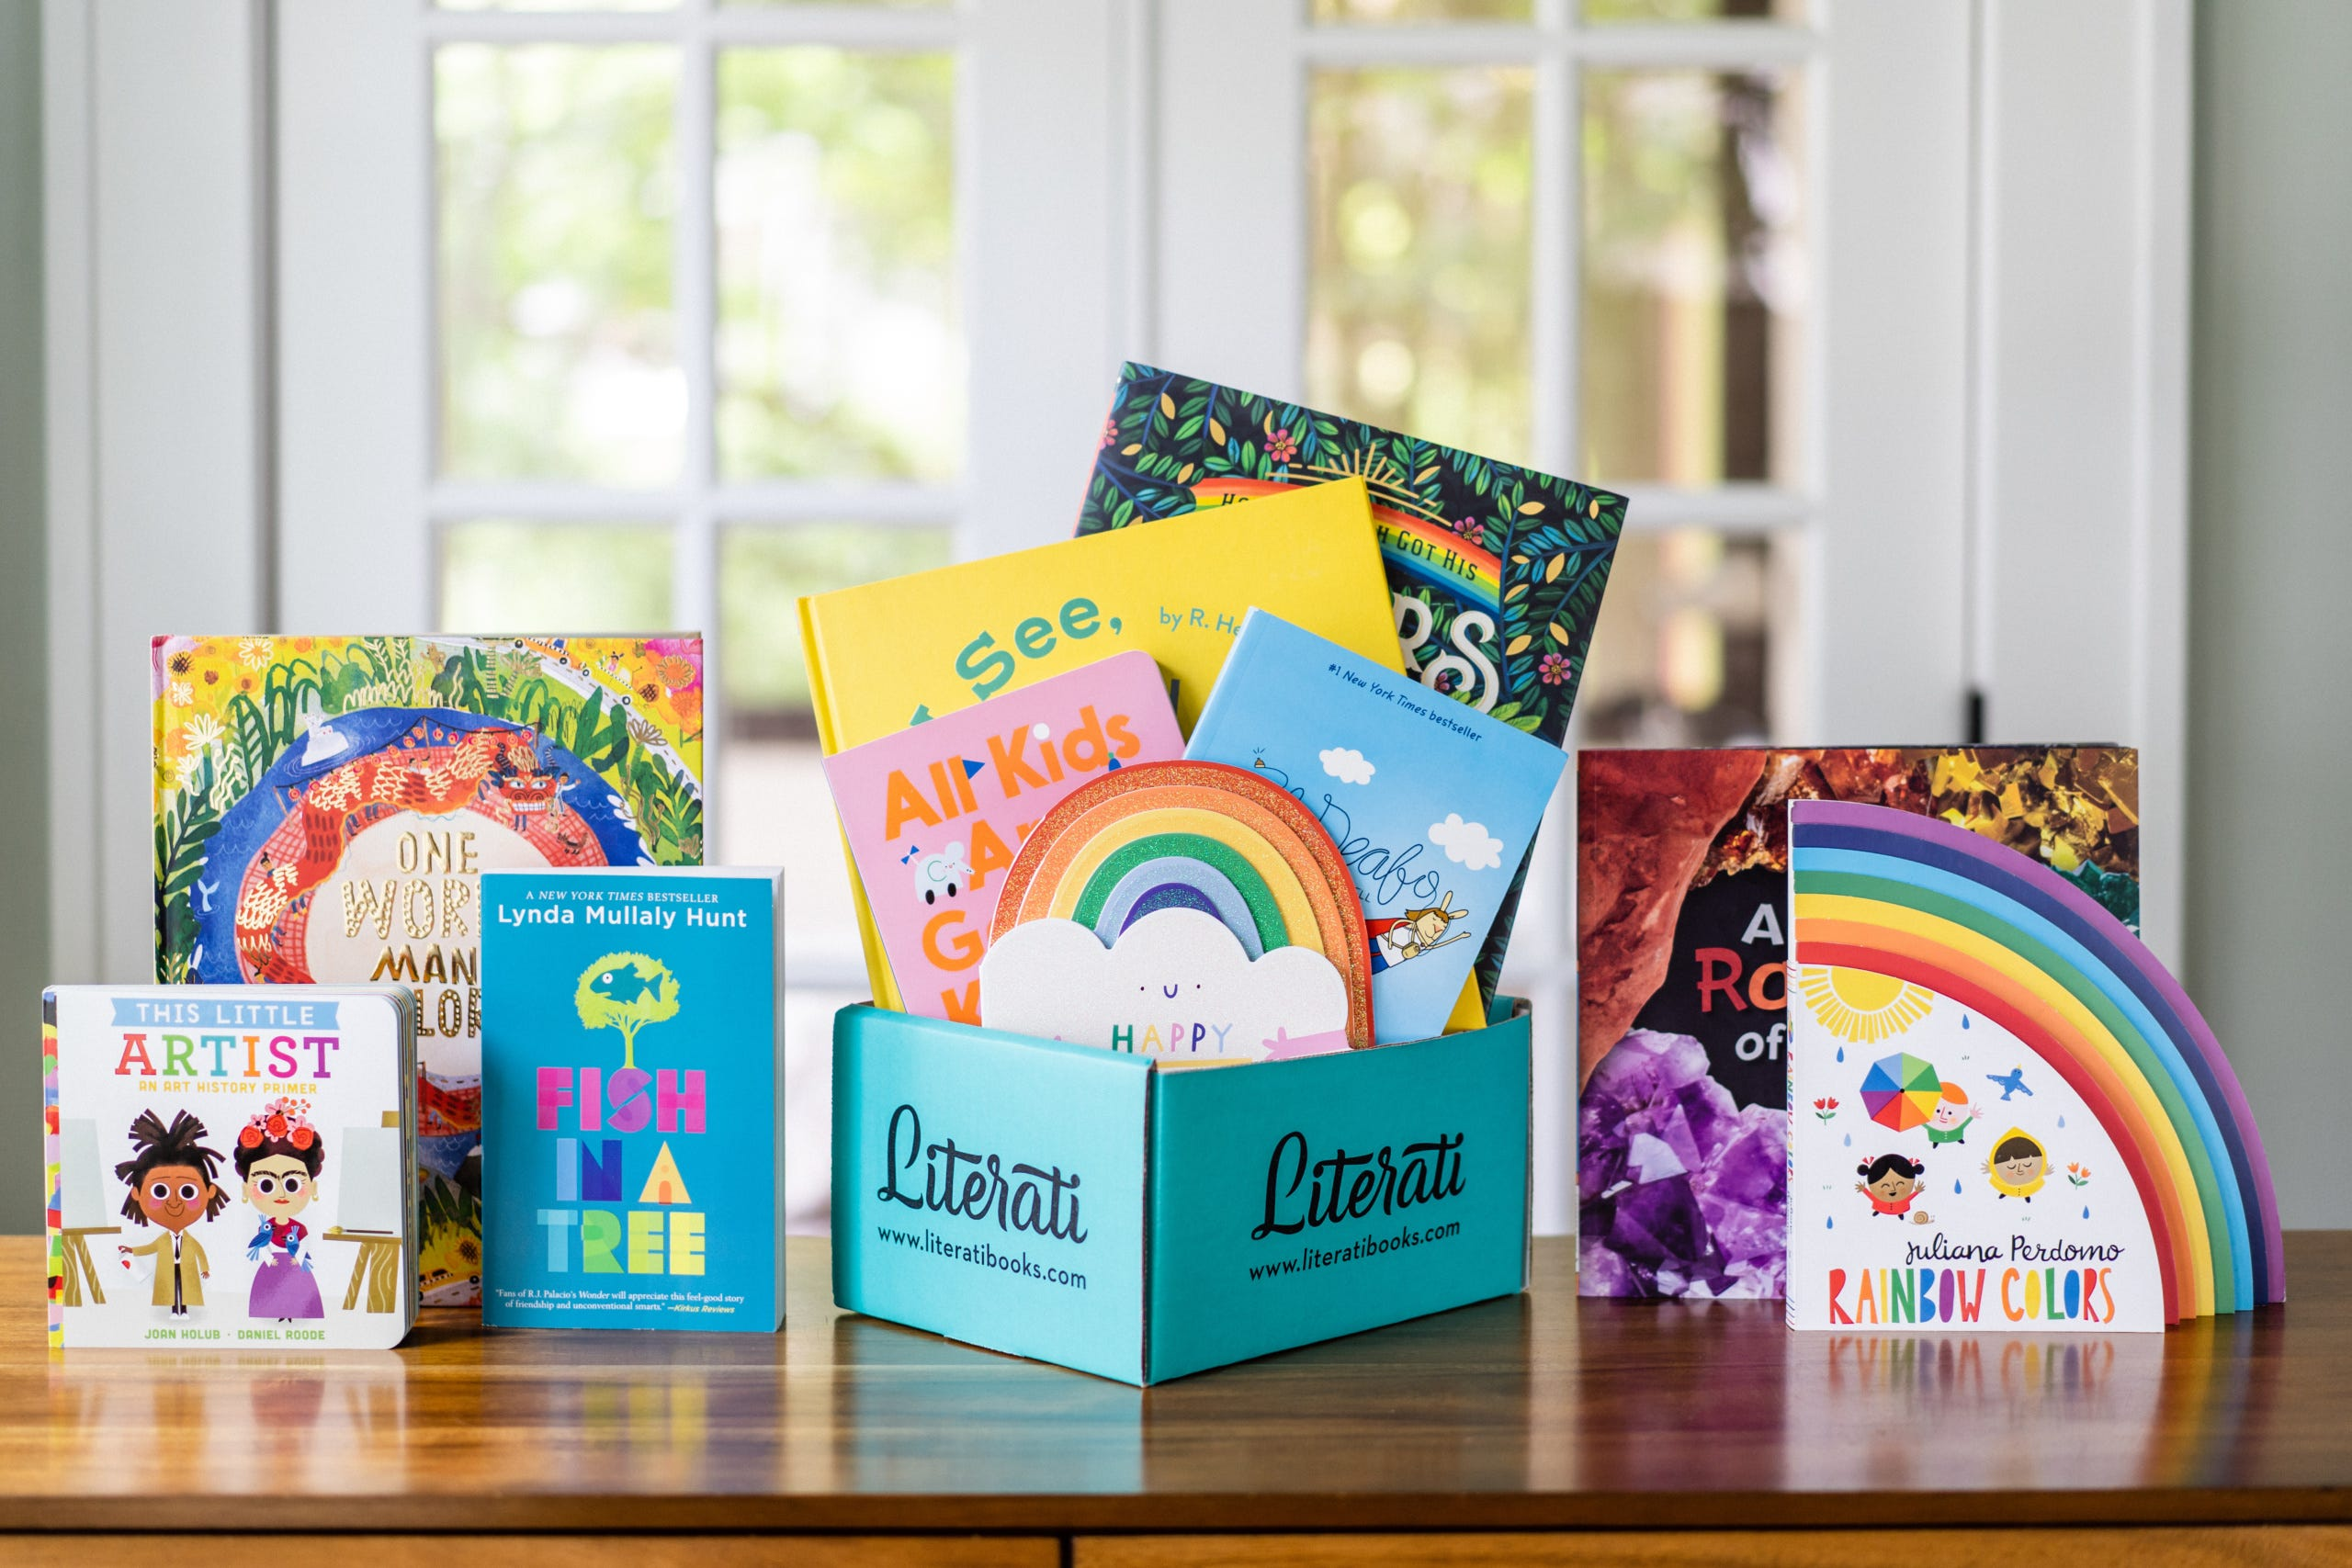 Several colorful children's books displayed on a wood tabletop in front of a window